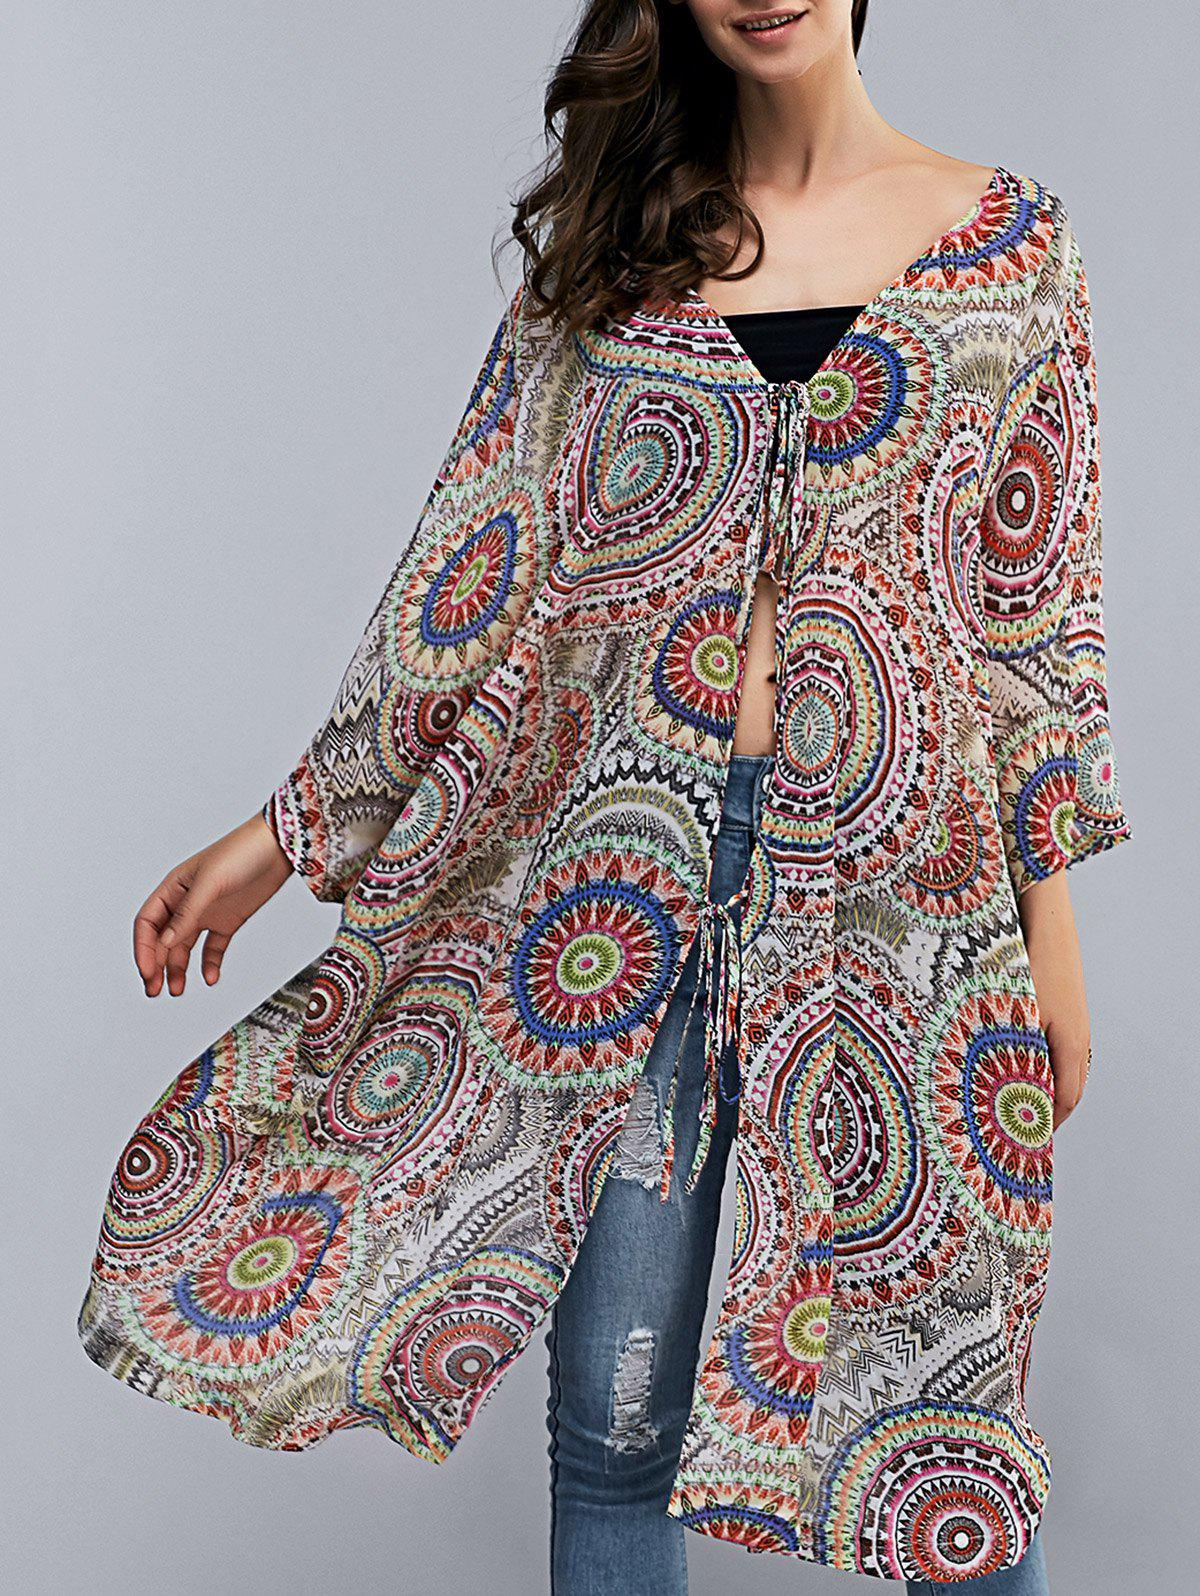 V Neck Batwing Sleeve Tribal Print Cover-Up - COLORMIX L